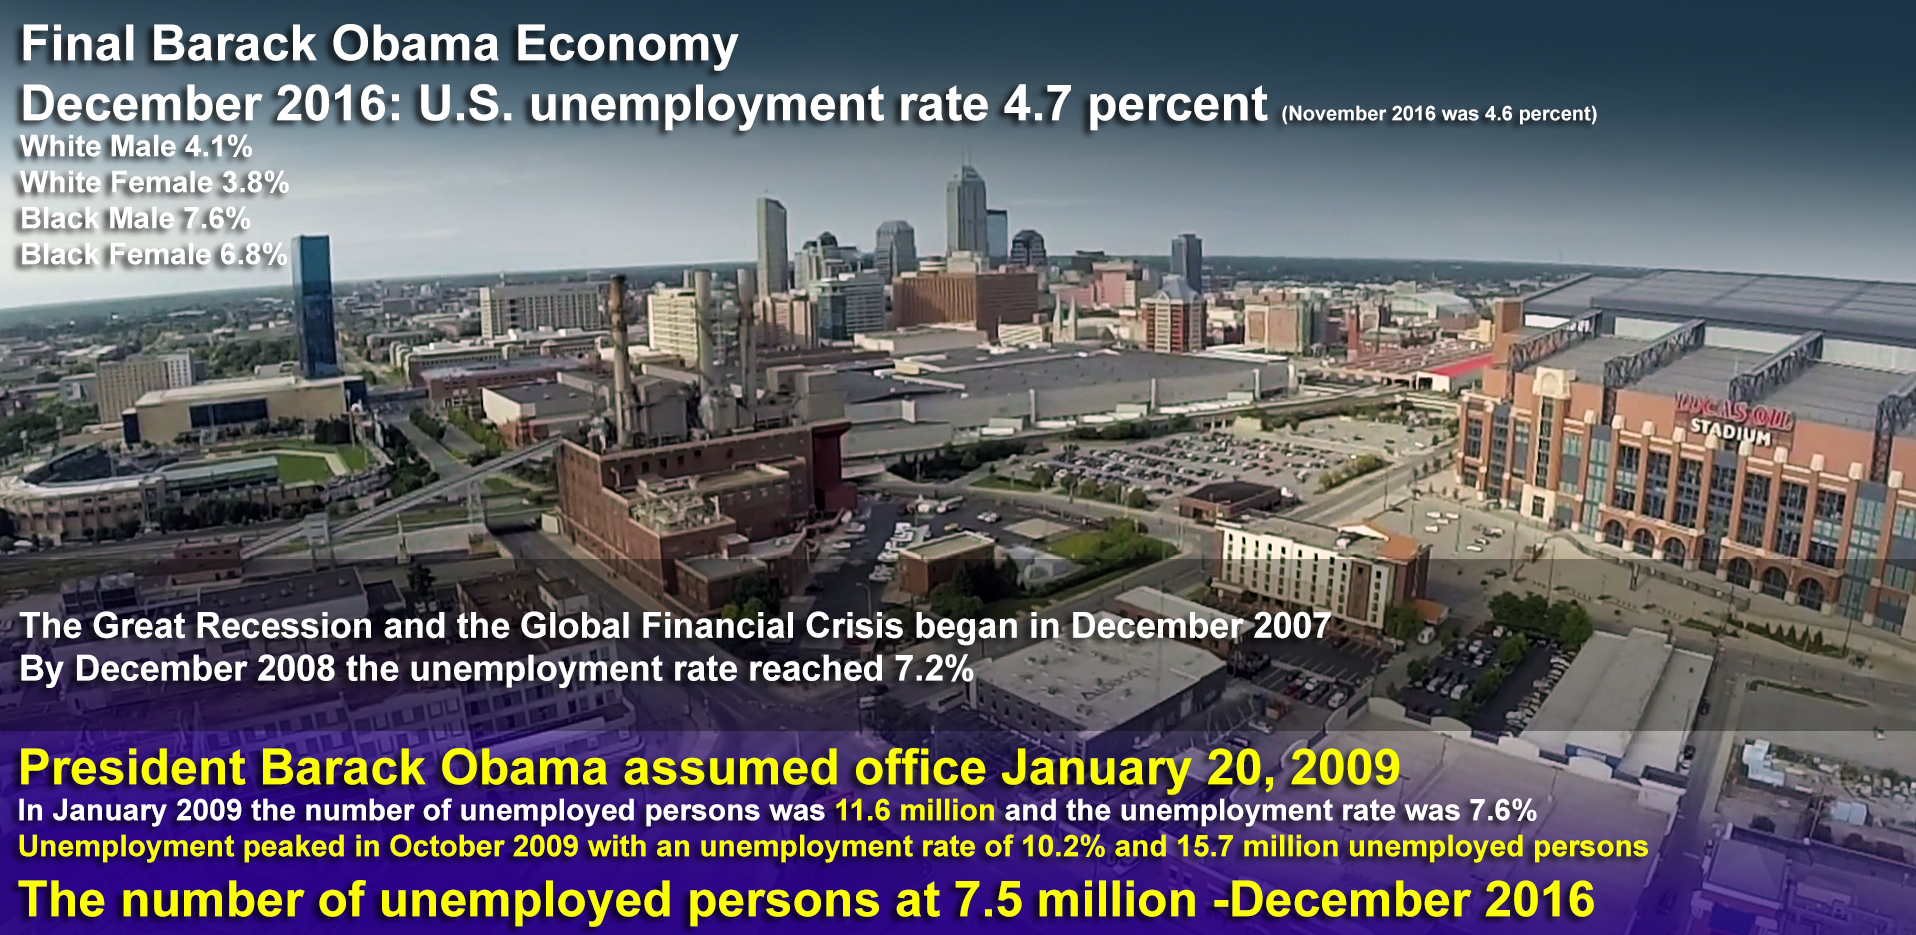 final obama economy u s unemployment rate percent in final obama economy u s unemployment rate 4 7 percent in 2016